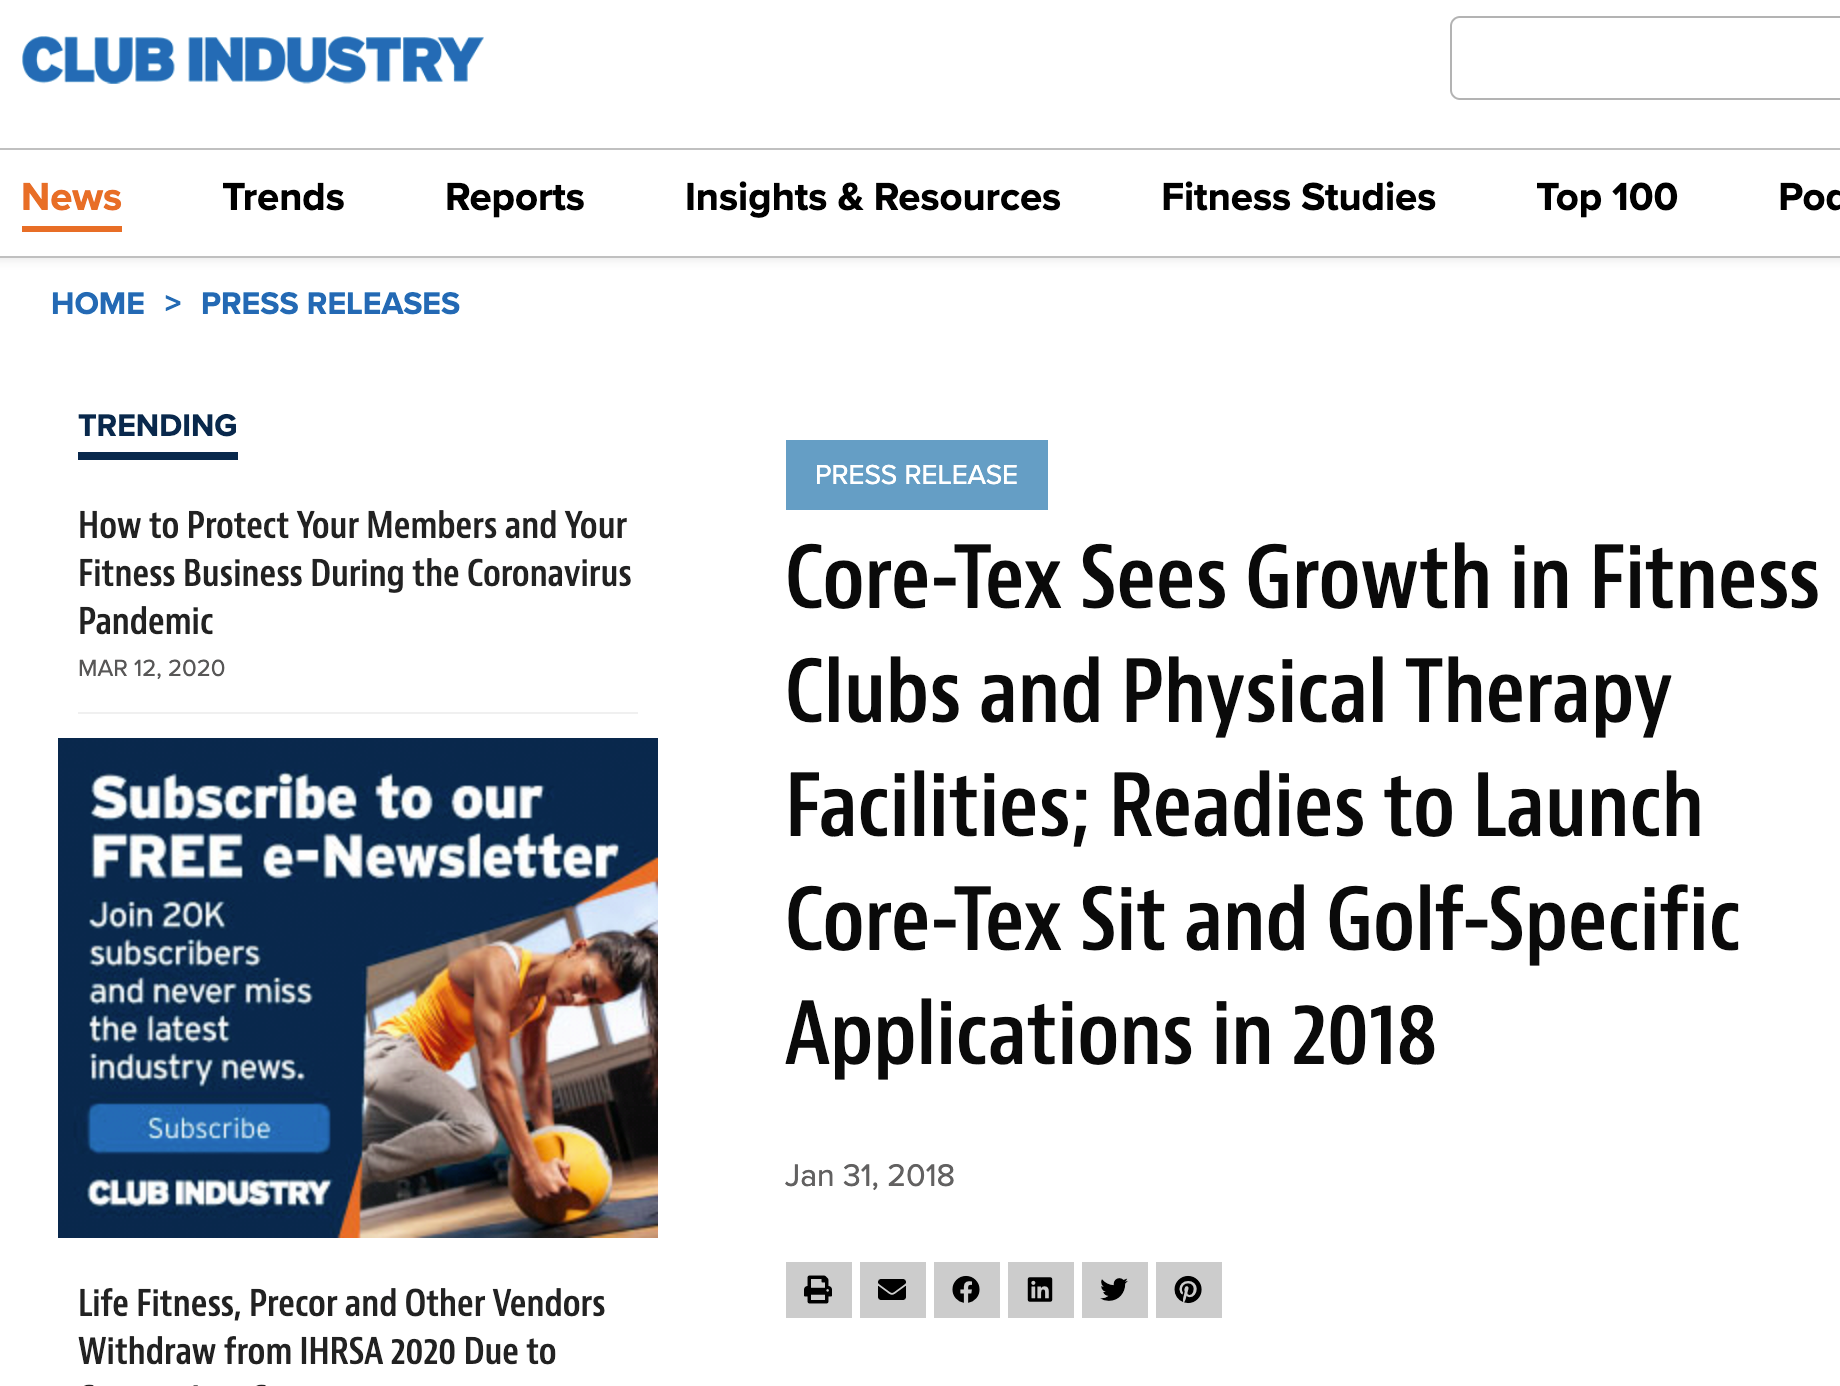 CLUB INDUSTRY MAGAZINE, JANUARY 2018: Core-Tex Sees Growth in Fitness Clubs and Physical Therapy Facilities; Readies to Launch Core-Tex Sit and Golf-Specific Applications in 2018